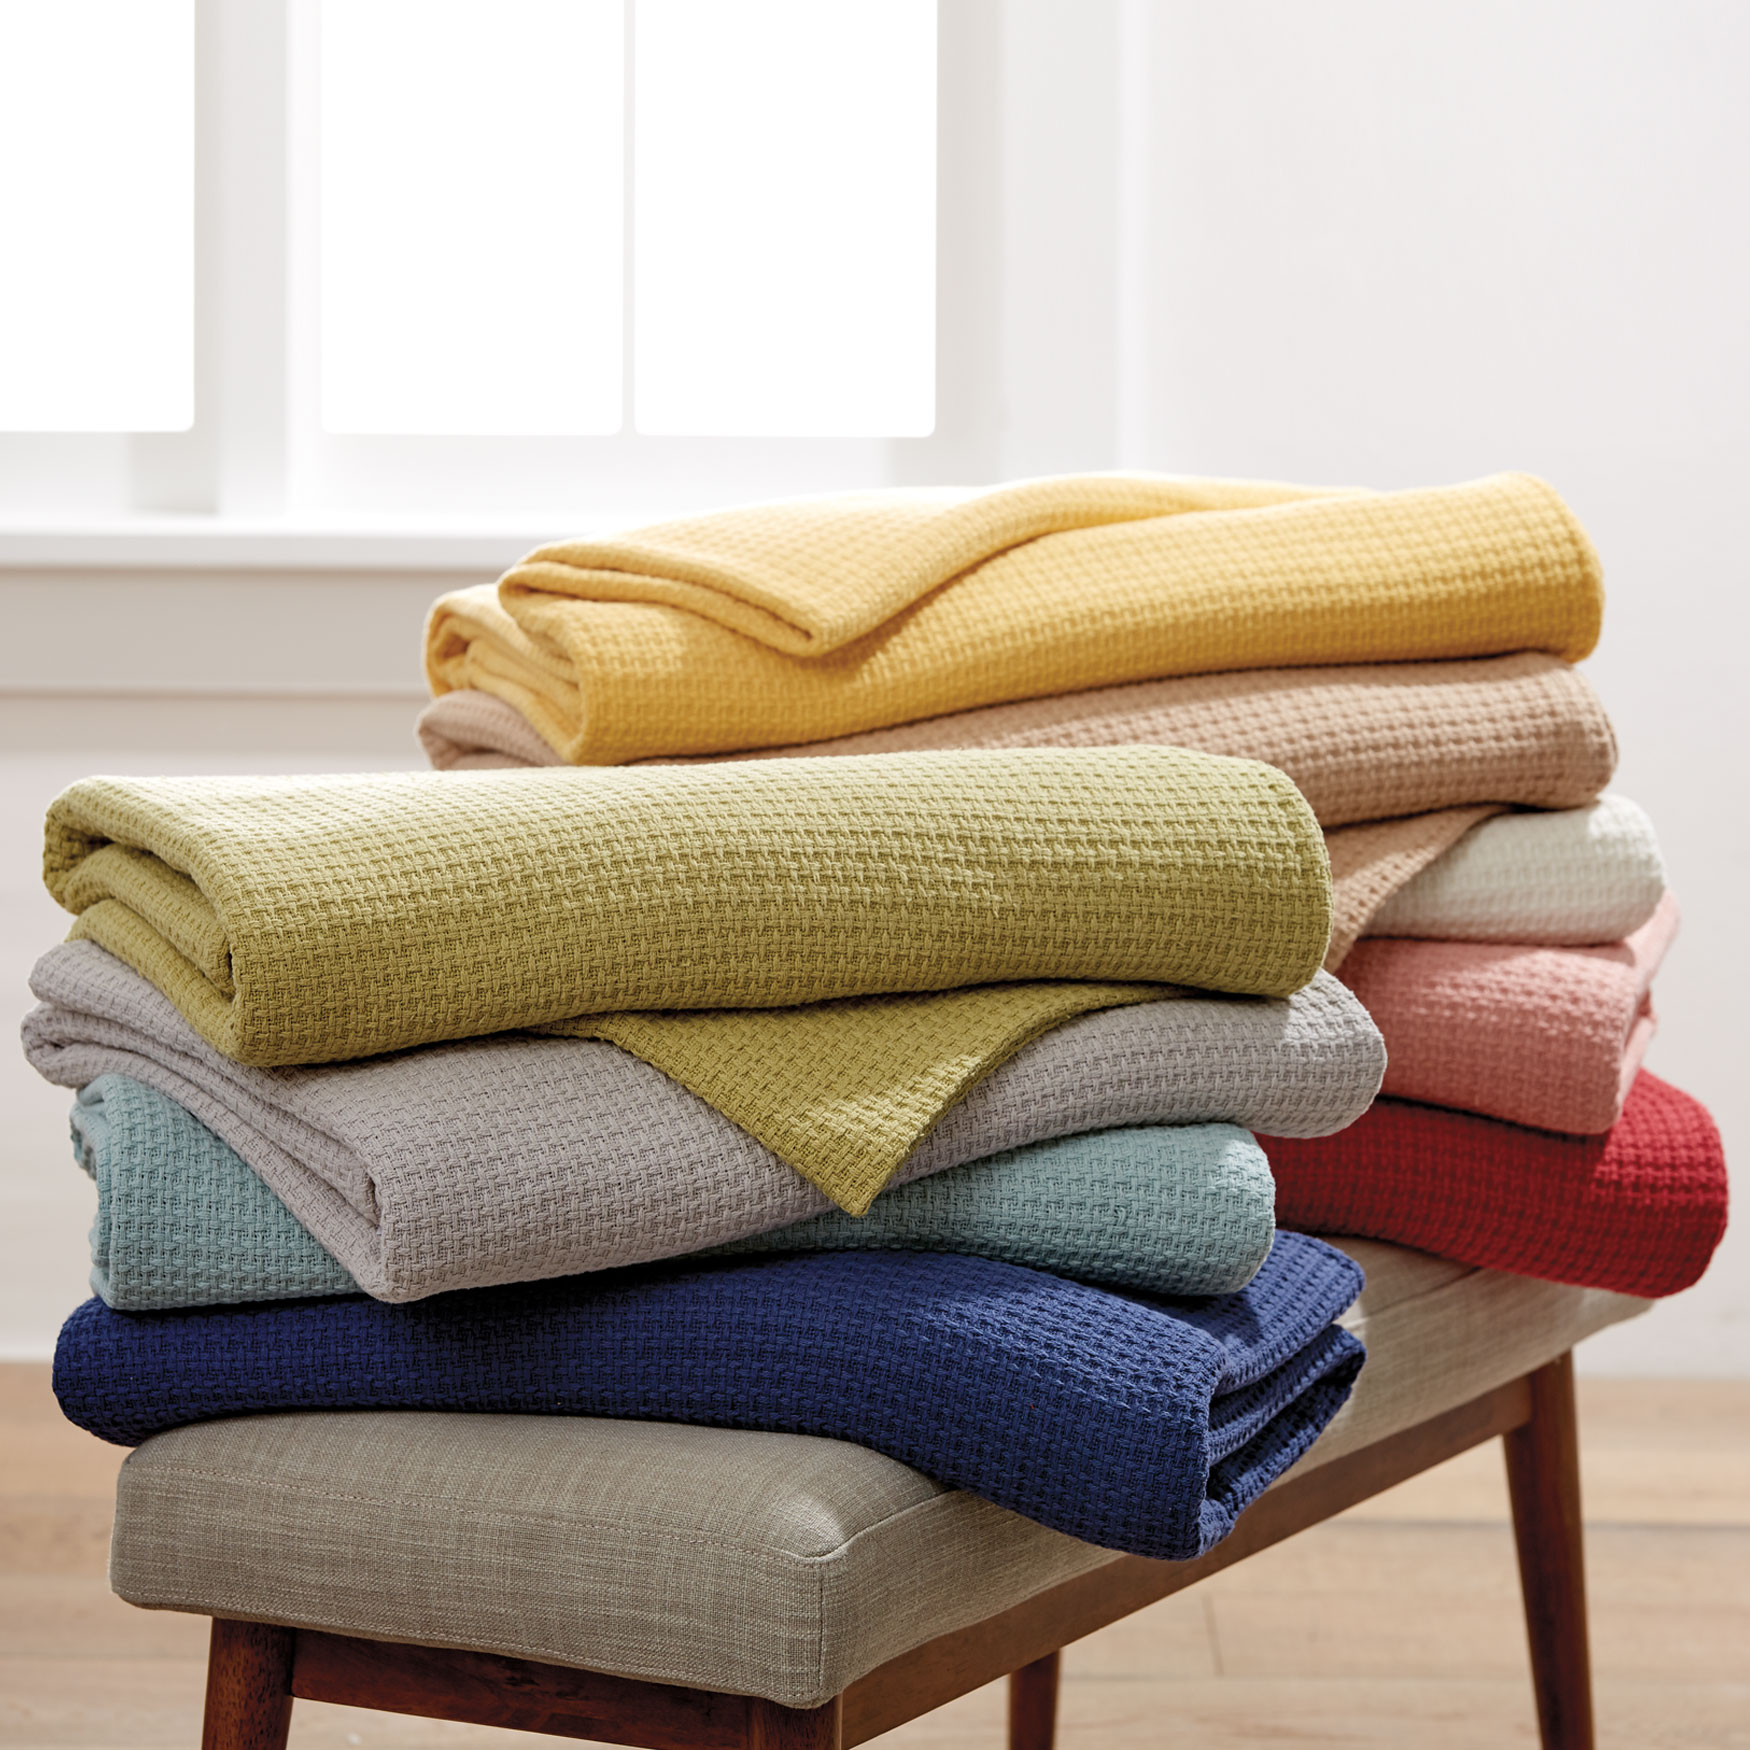 BrylaneHome® Studio Basic Cotton Blanket,